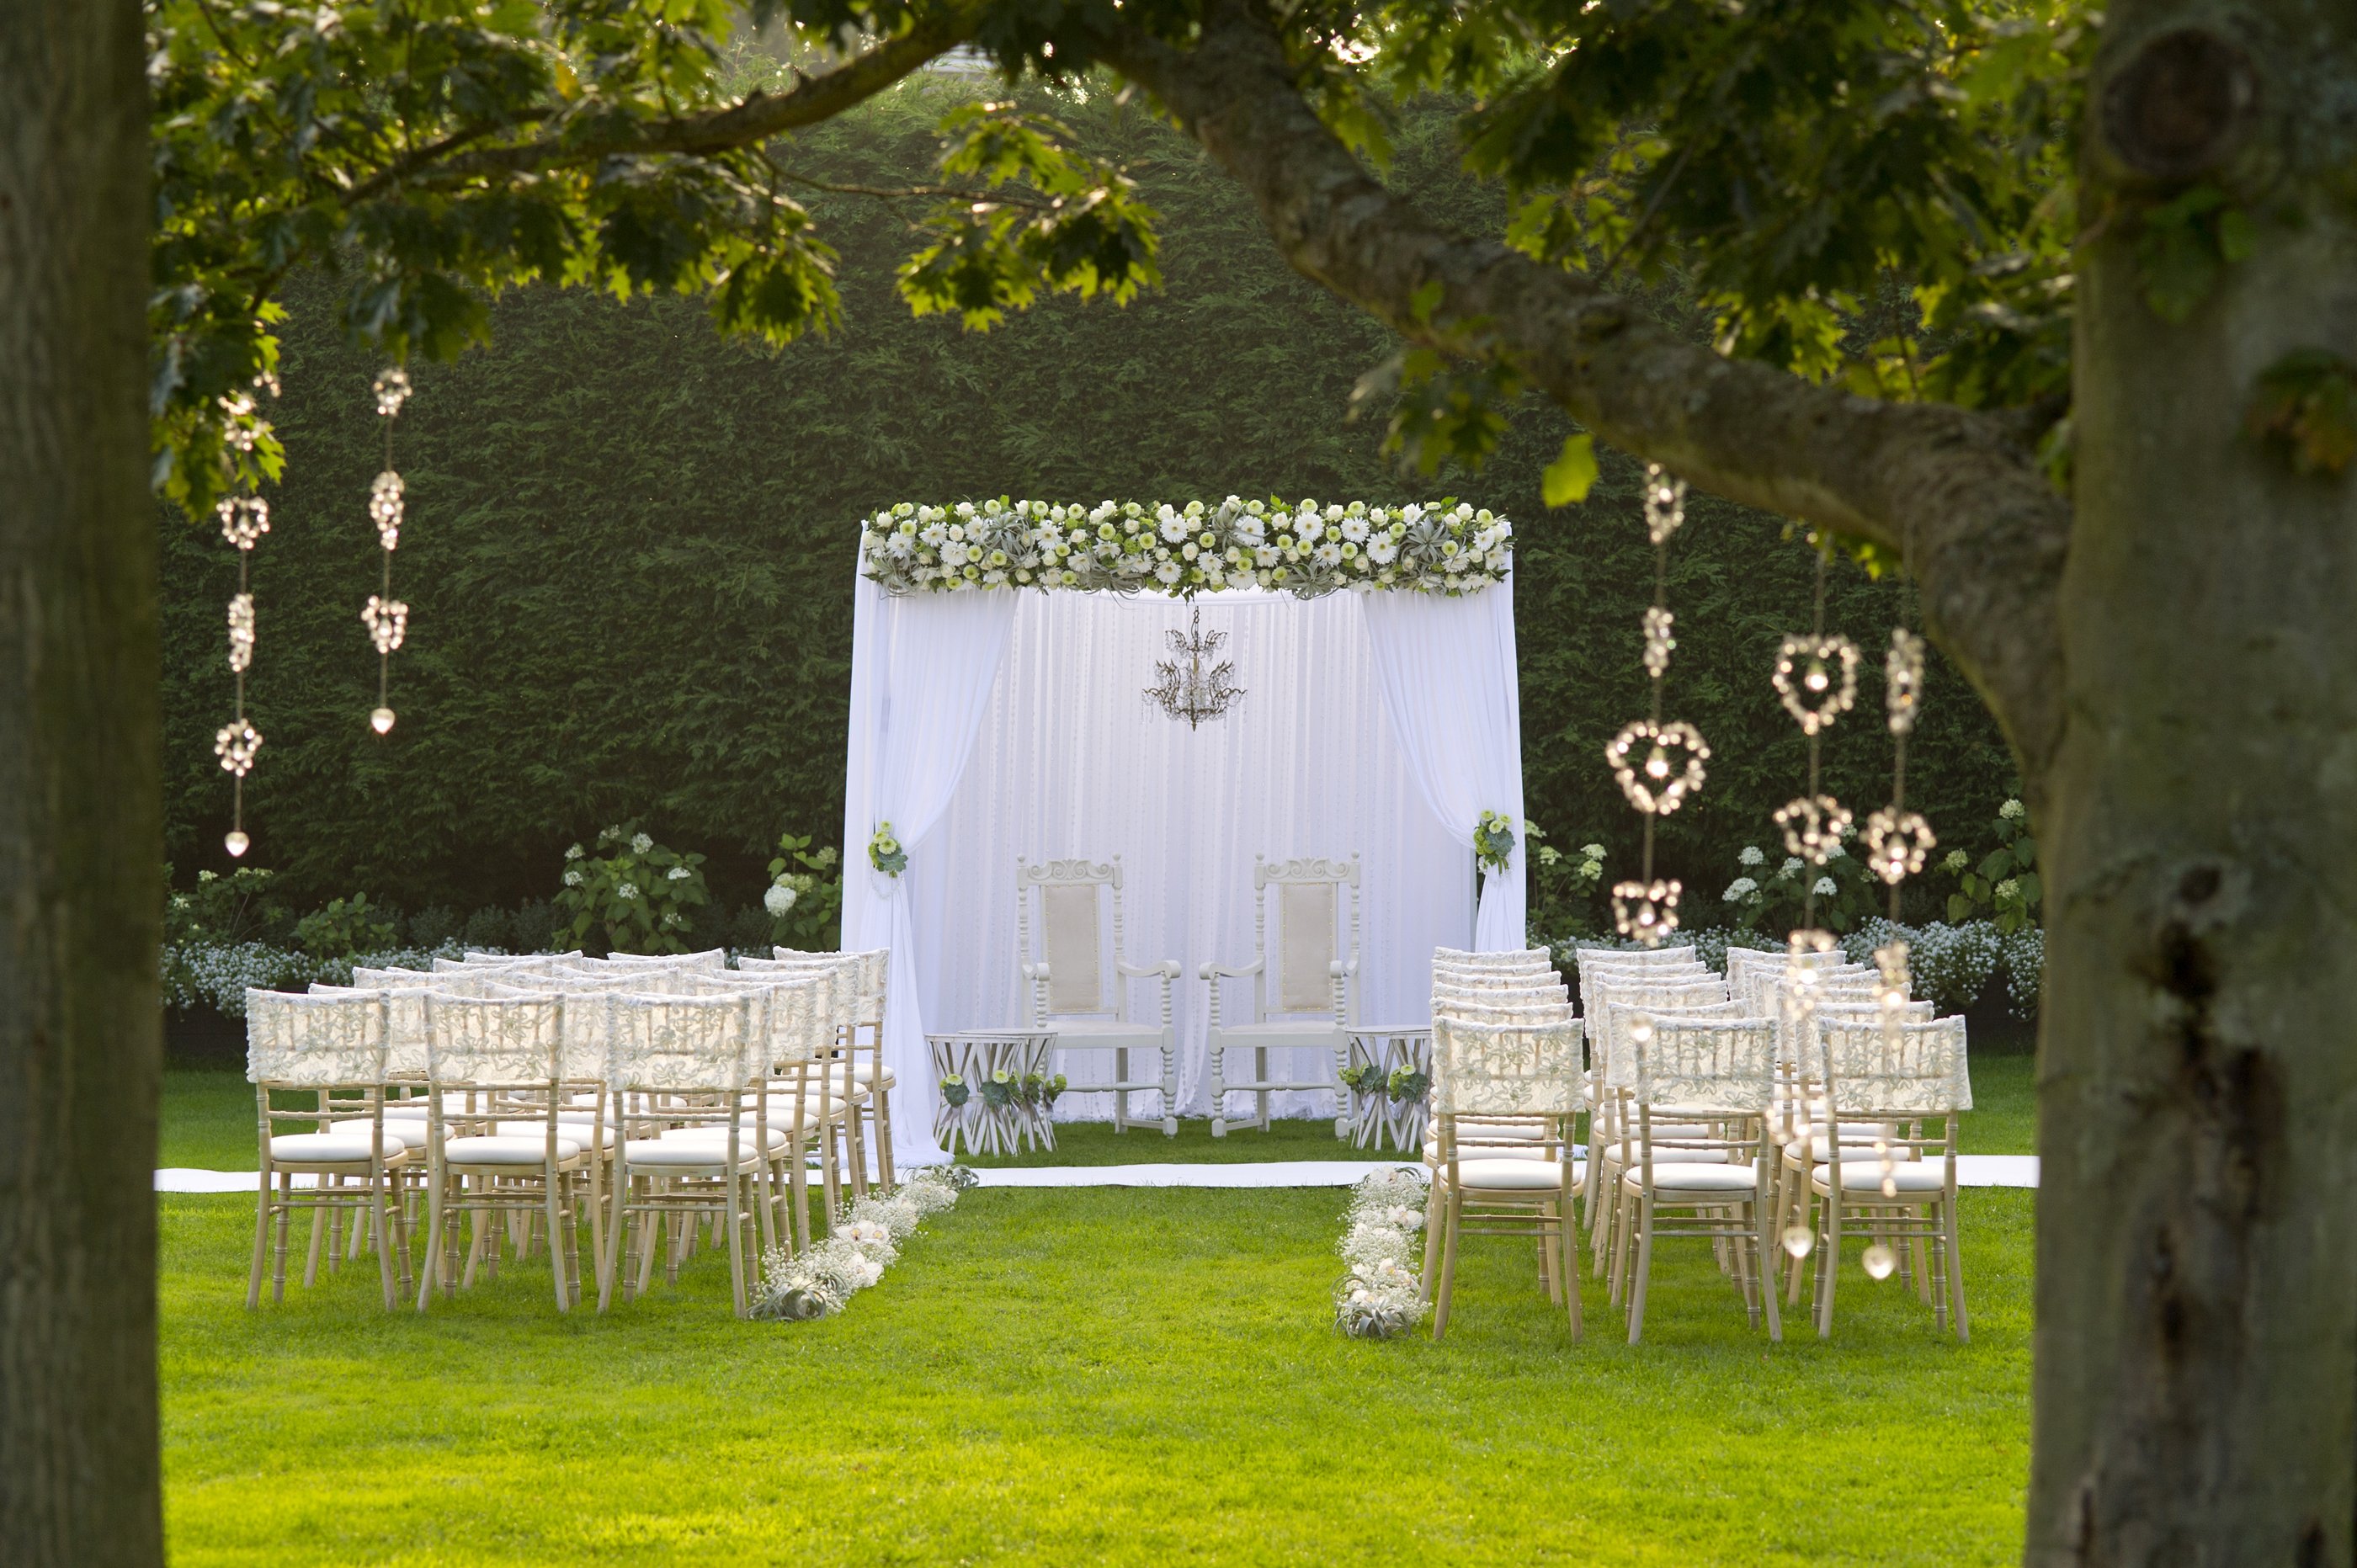 Outdoor-wedding-ceremony-garden-wedding